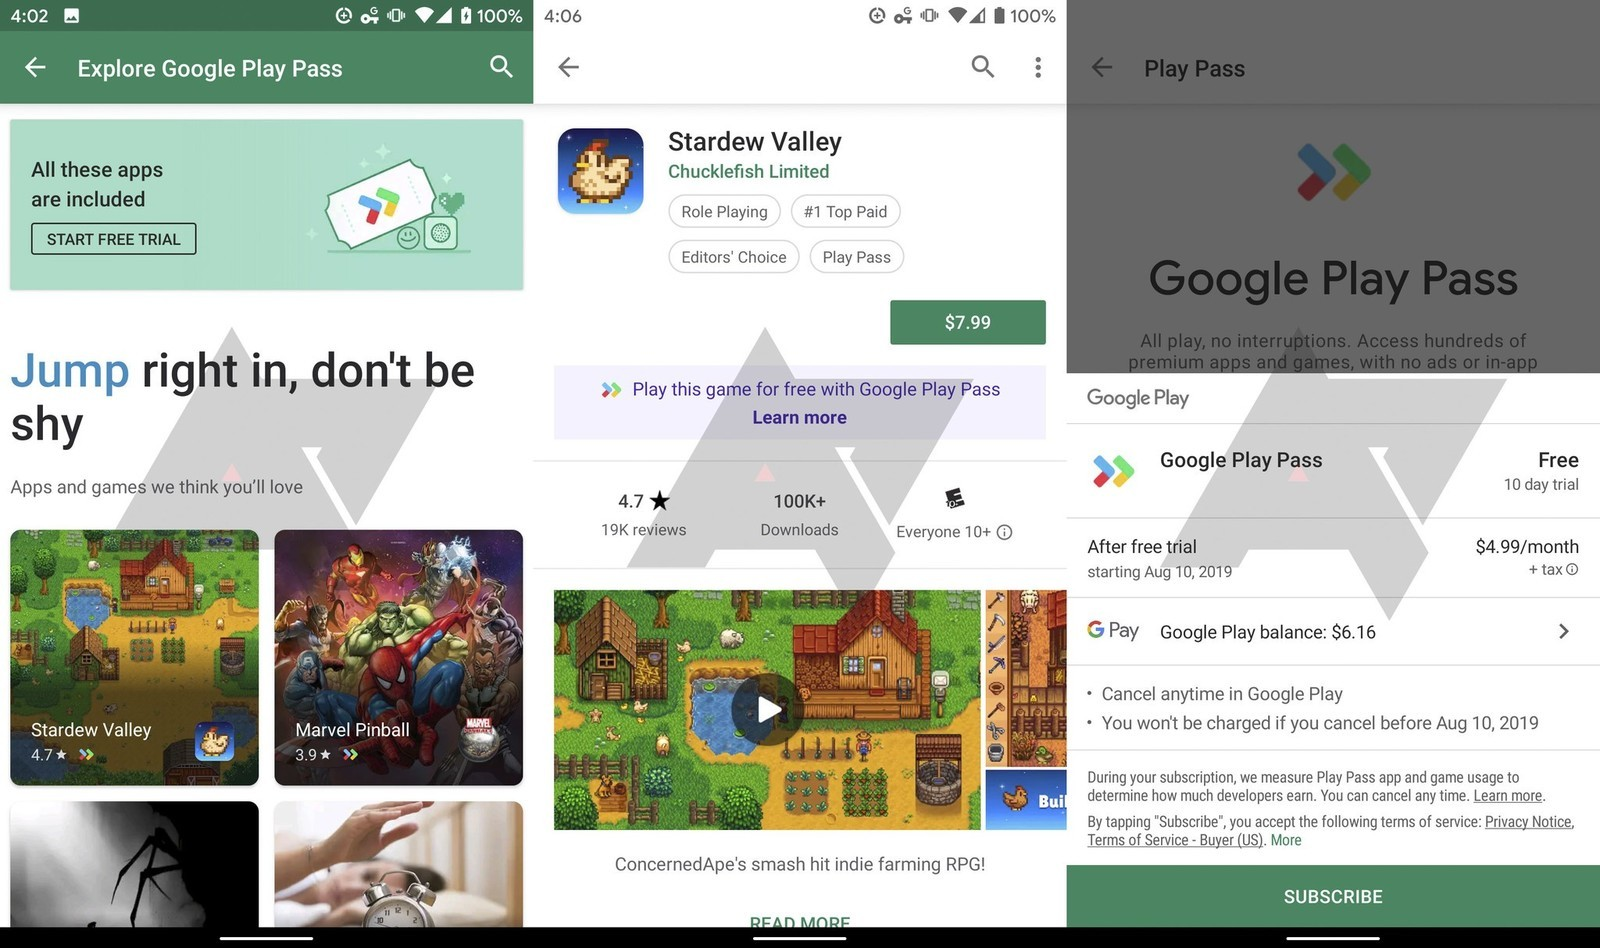 Google Play Pass screenshots from Android Police 2